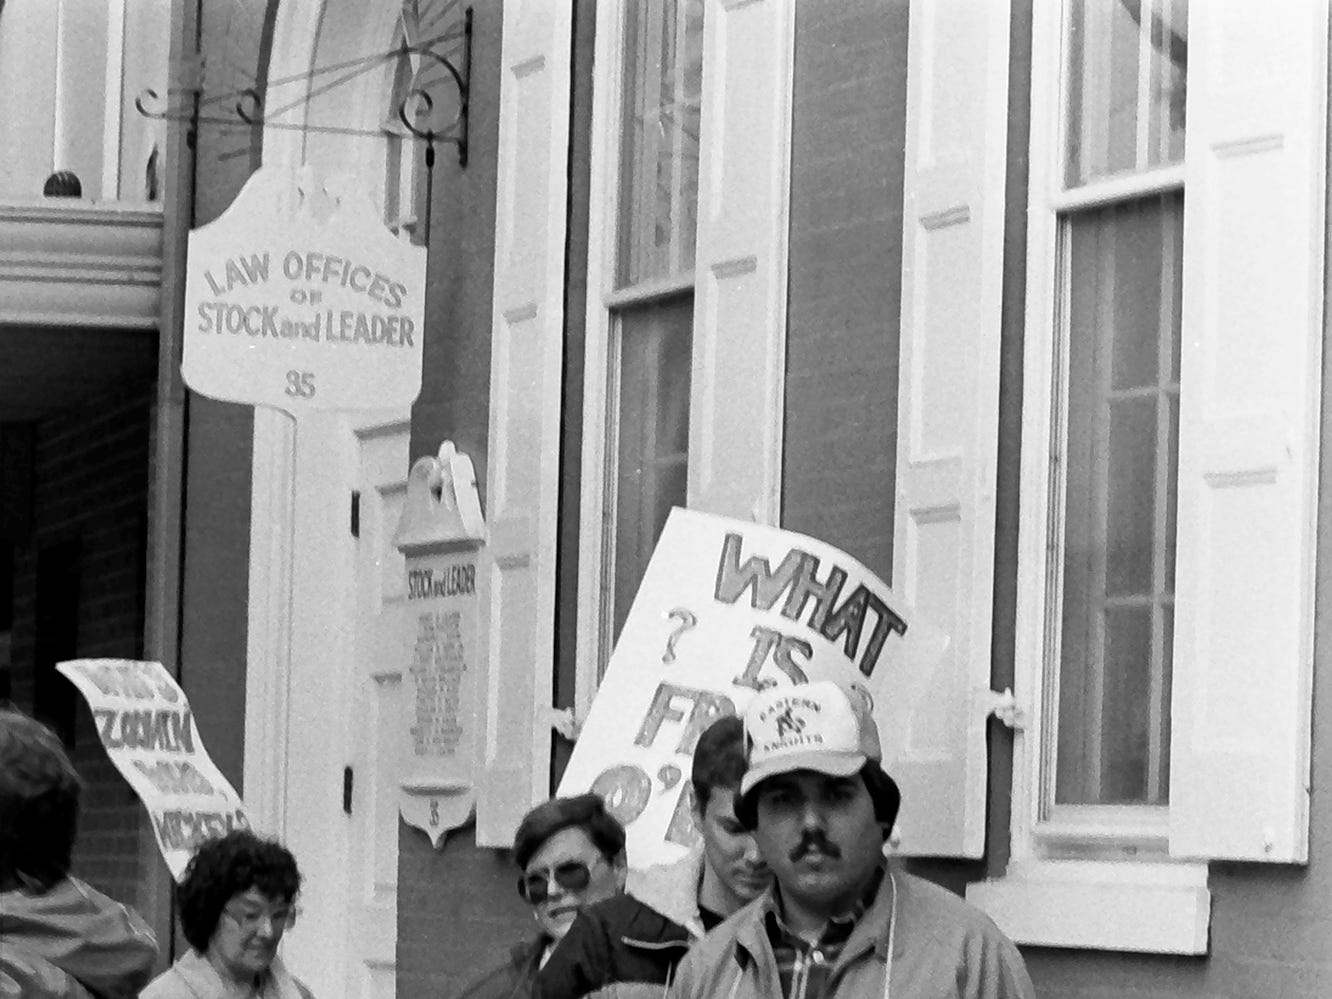 In 1985, teachers were picketing in front of the offices of Stock and Leader in York.